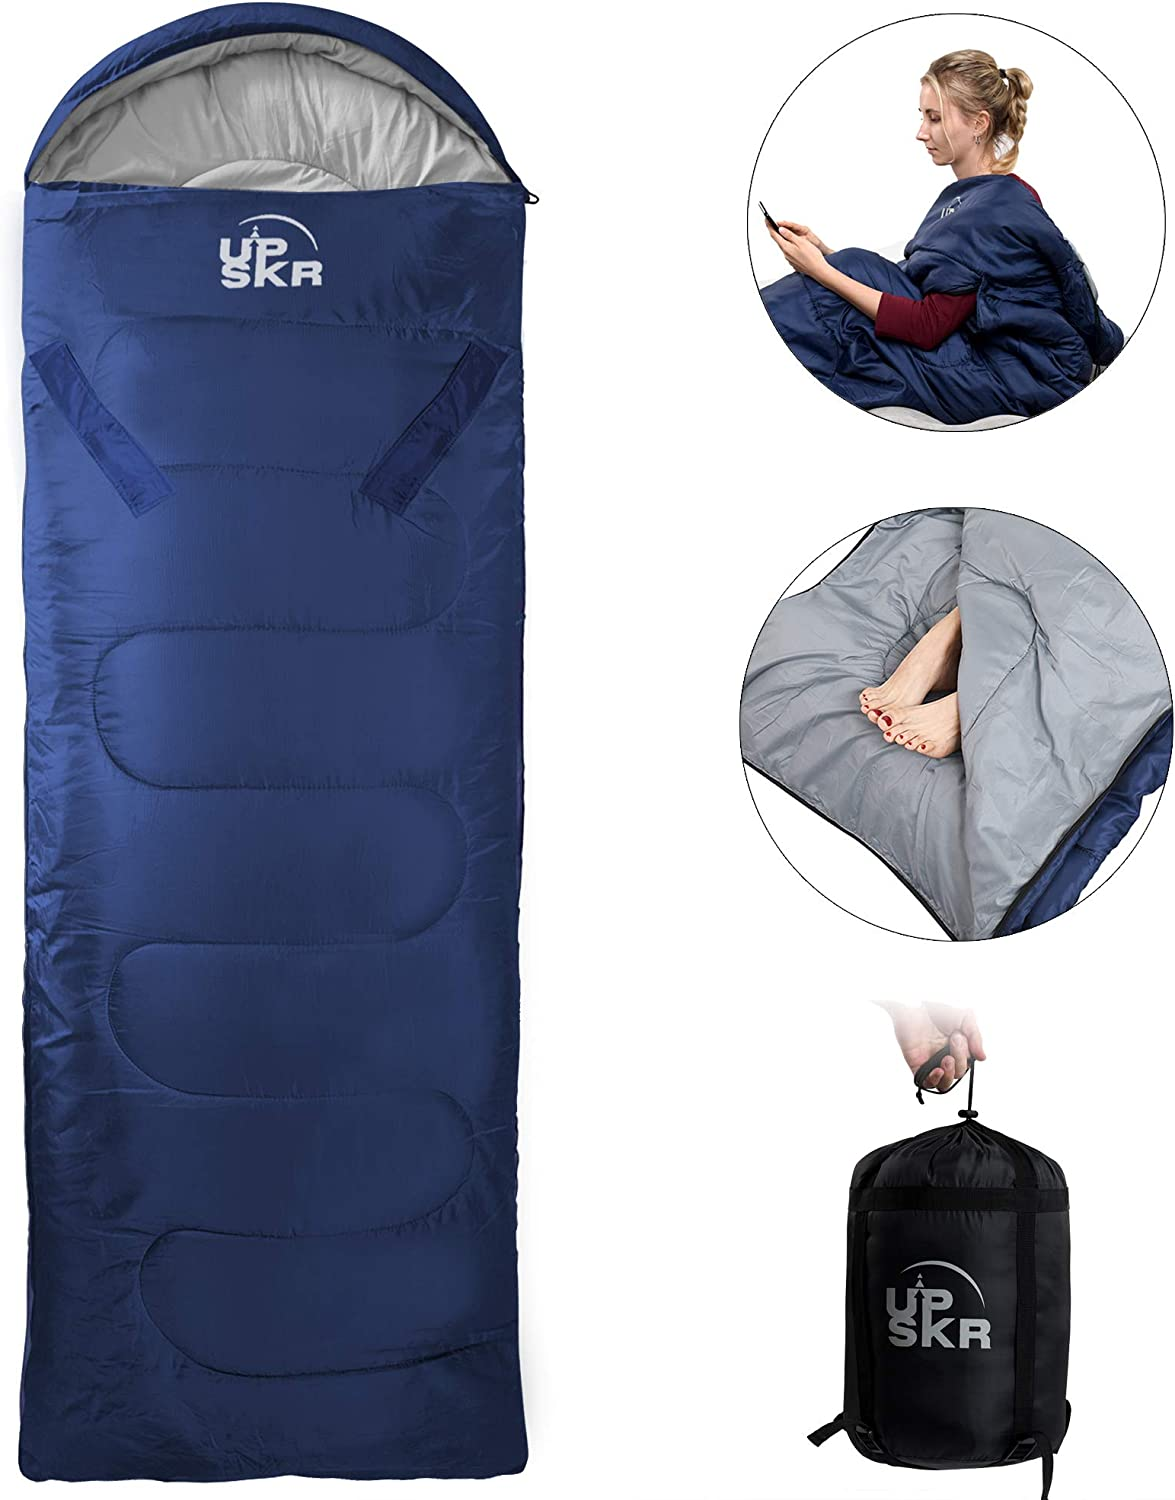 UPSKR Sleeping Bag Lightweight & Waterproof for Adults & Kids Cold Weather,3-4 Season Envolope Sleeping Bags Great for Indoor & Outdoor Use Hiking Backpacking Camping Traveling with Compression Sack